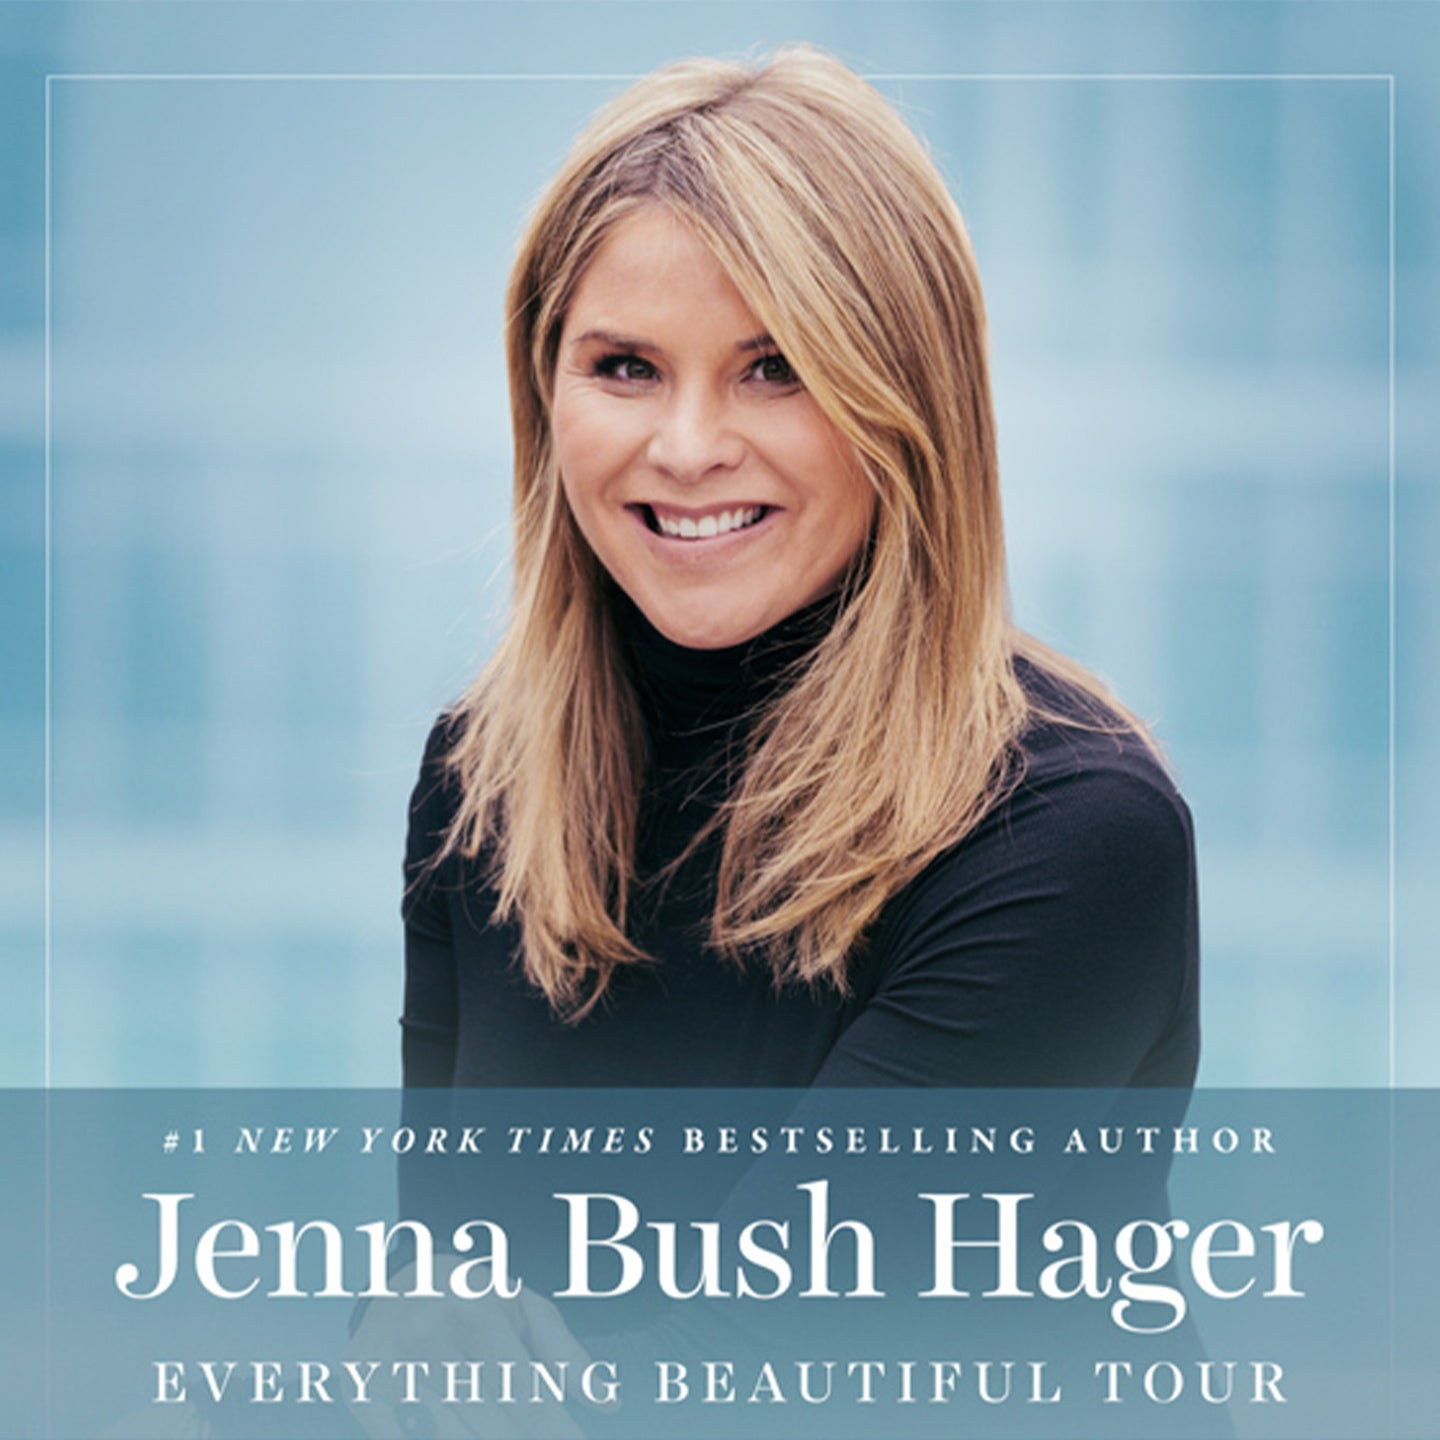 Everything Beautiful Tour with Jenna Bush Hager